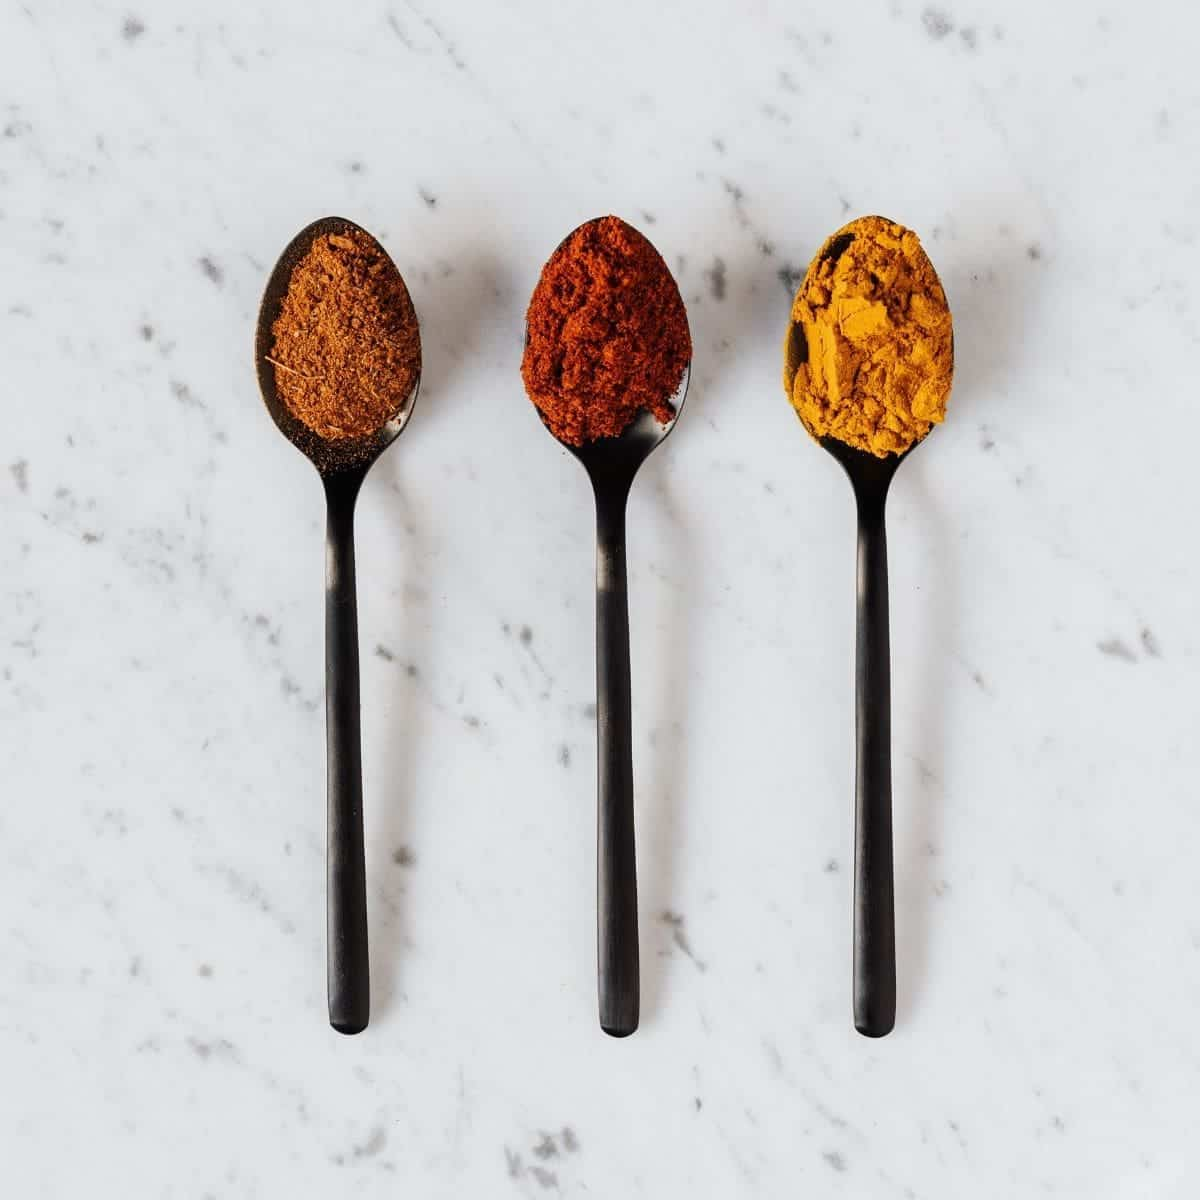 Keto Friendly Spices You Need to Buy